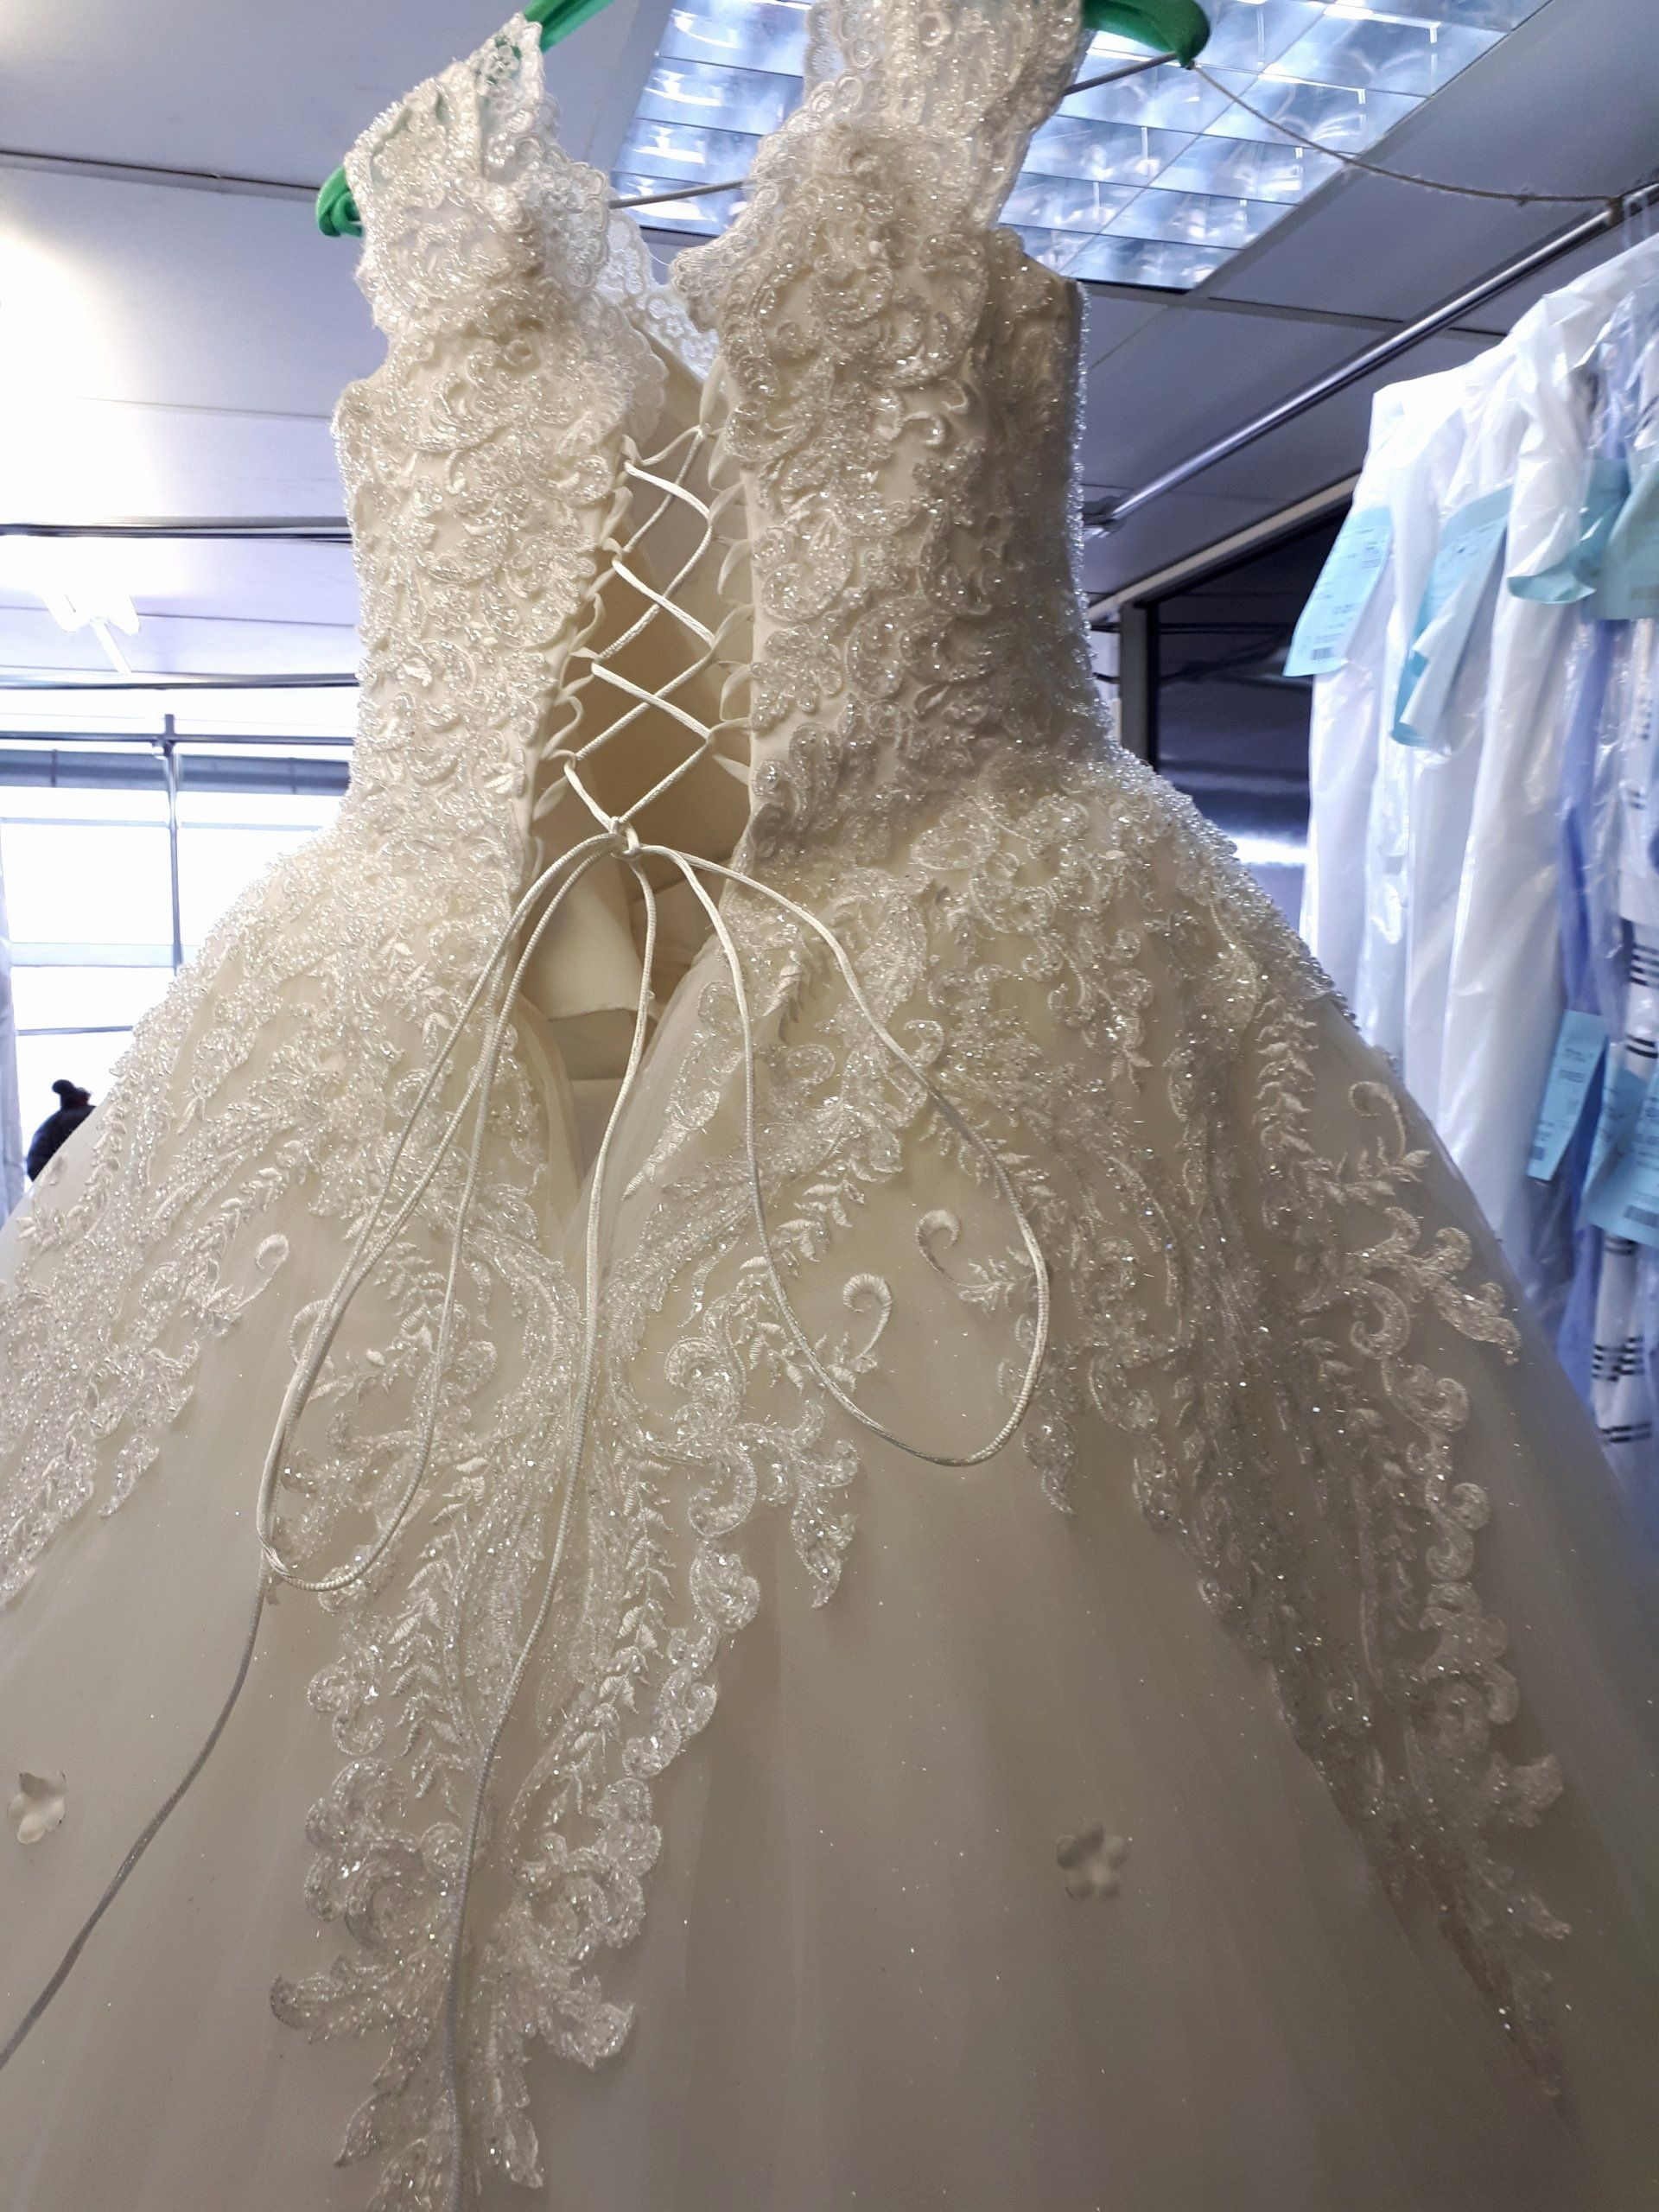 Wedding Dress Dry Cleaning Prices Best Of Dry Cleaners Collection And Delivery Colindale Nw9 At A Da In 2020 Clean Wedding Dress Wedding Dresses Unique Wedding Dresses